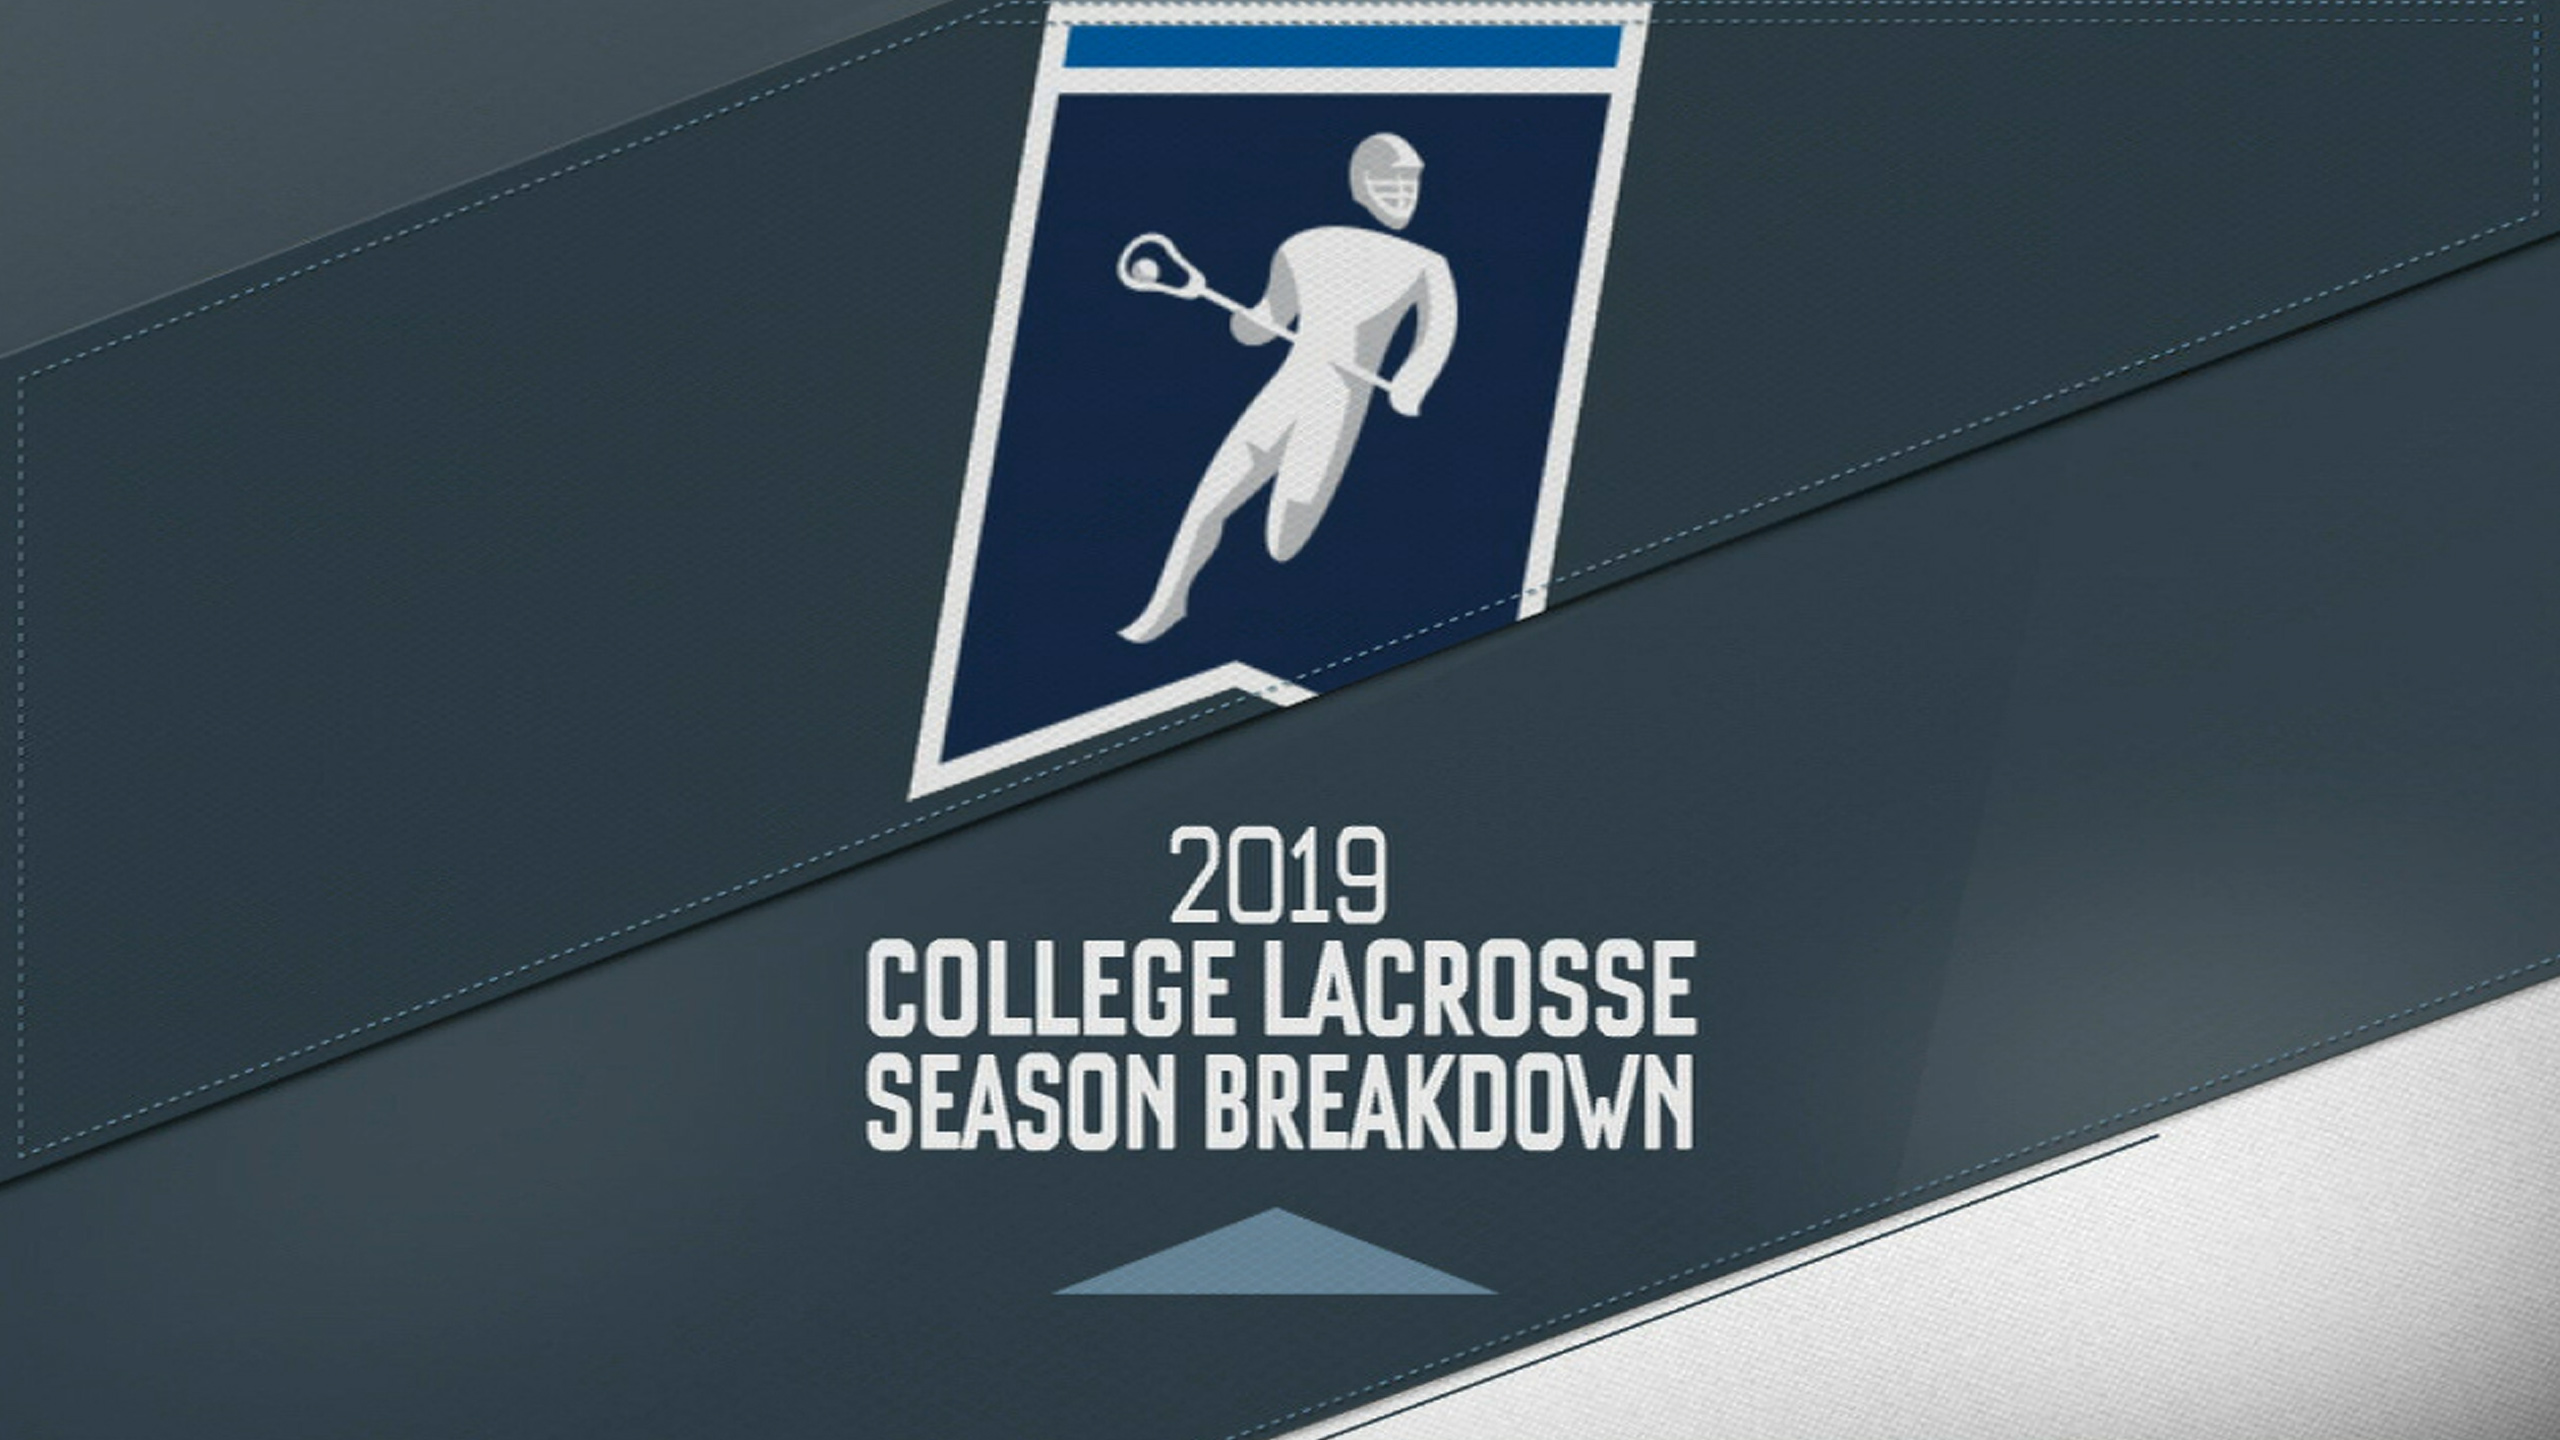 2019 College Lacrosse Season Breakdown